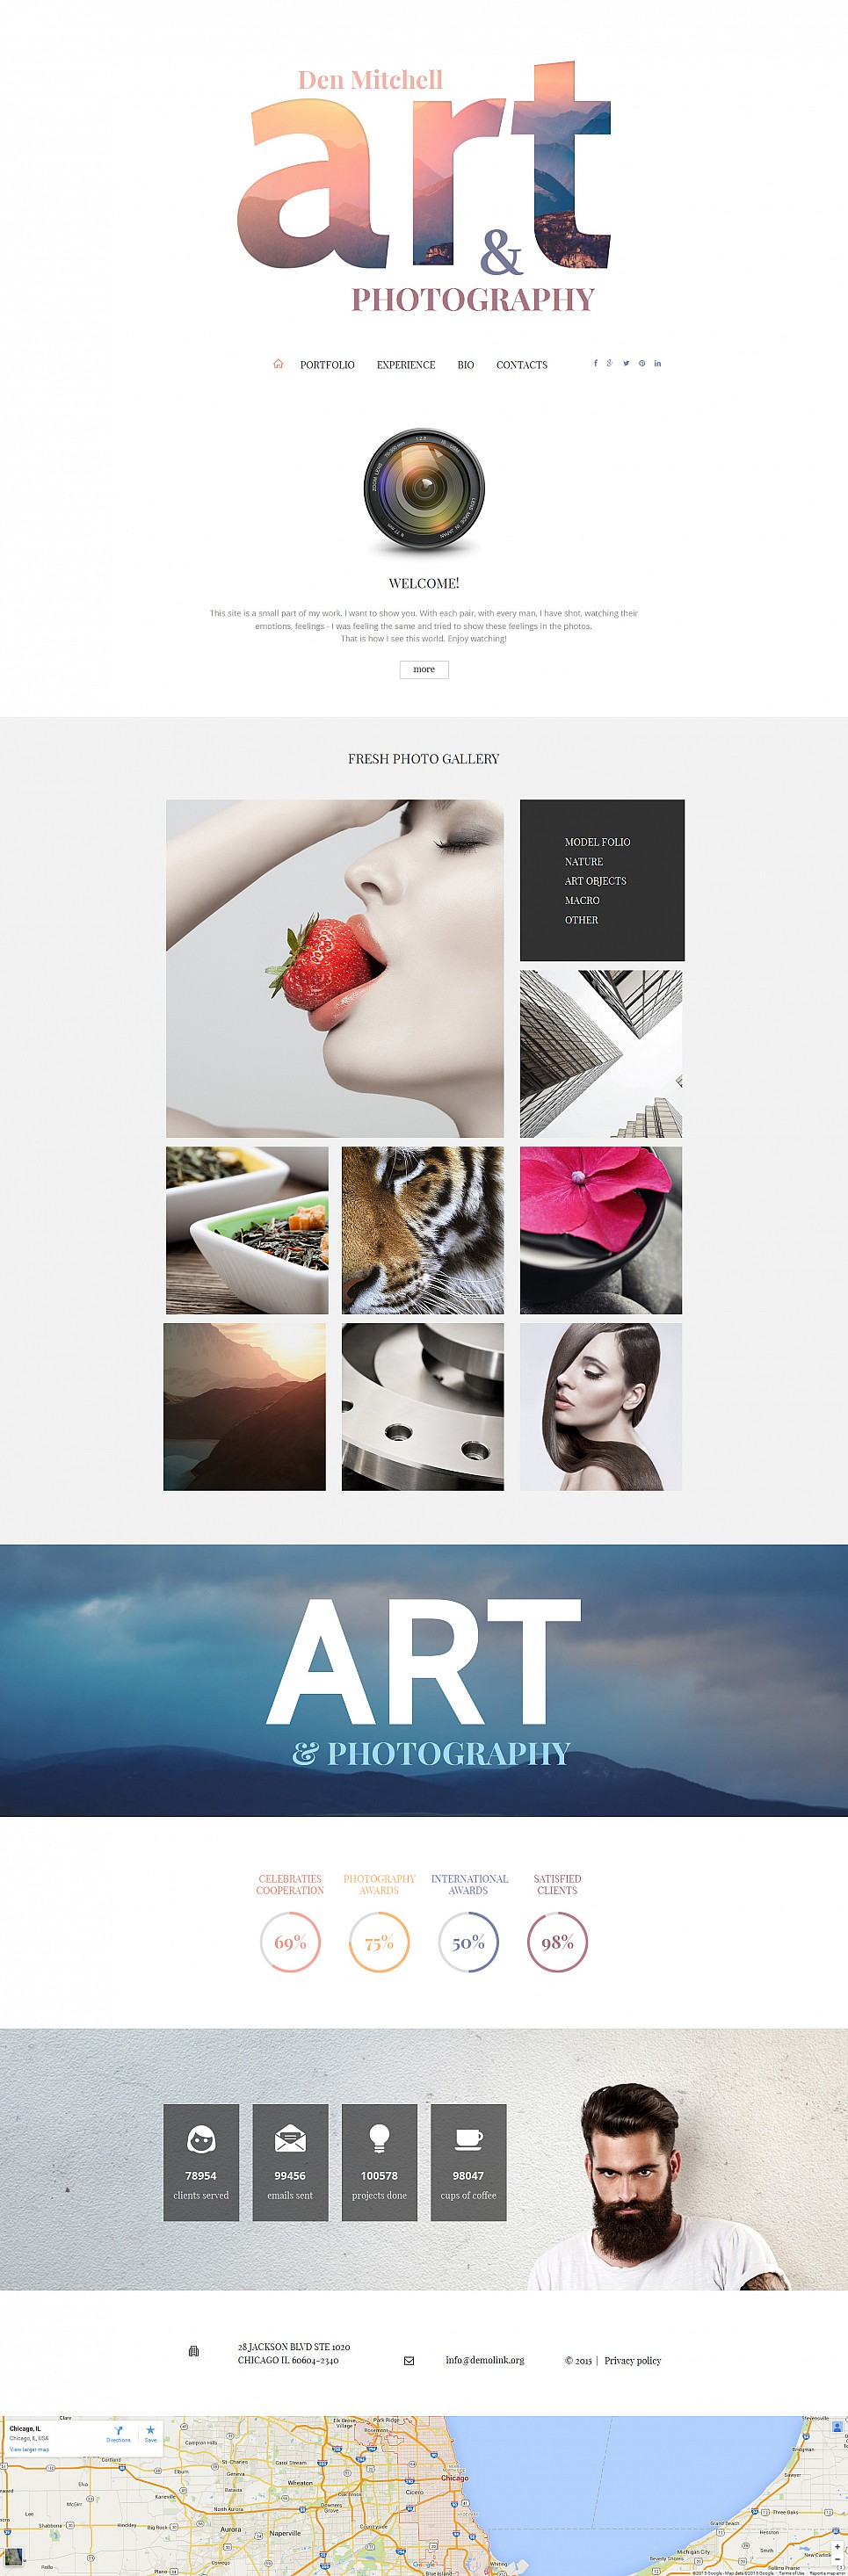 White background web template for photographers